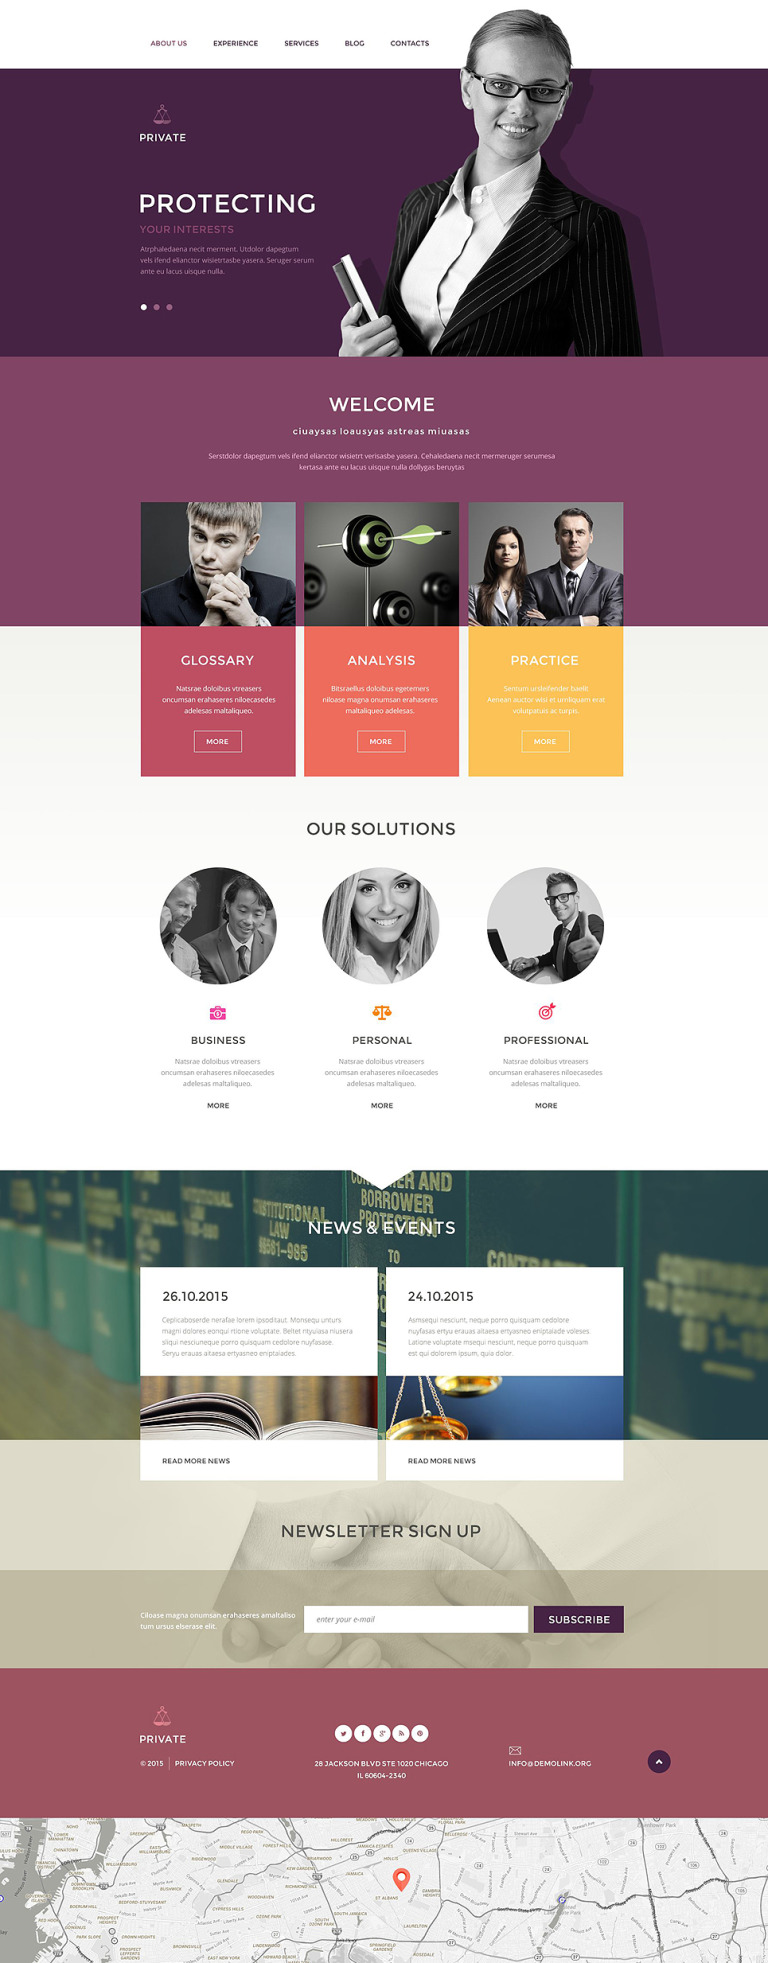 Law Office Drupal Template New Screenshots BIG